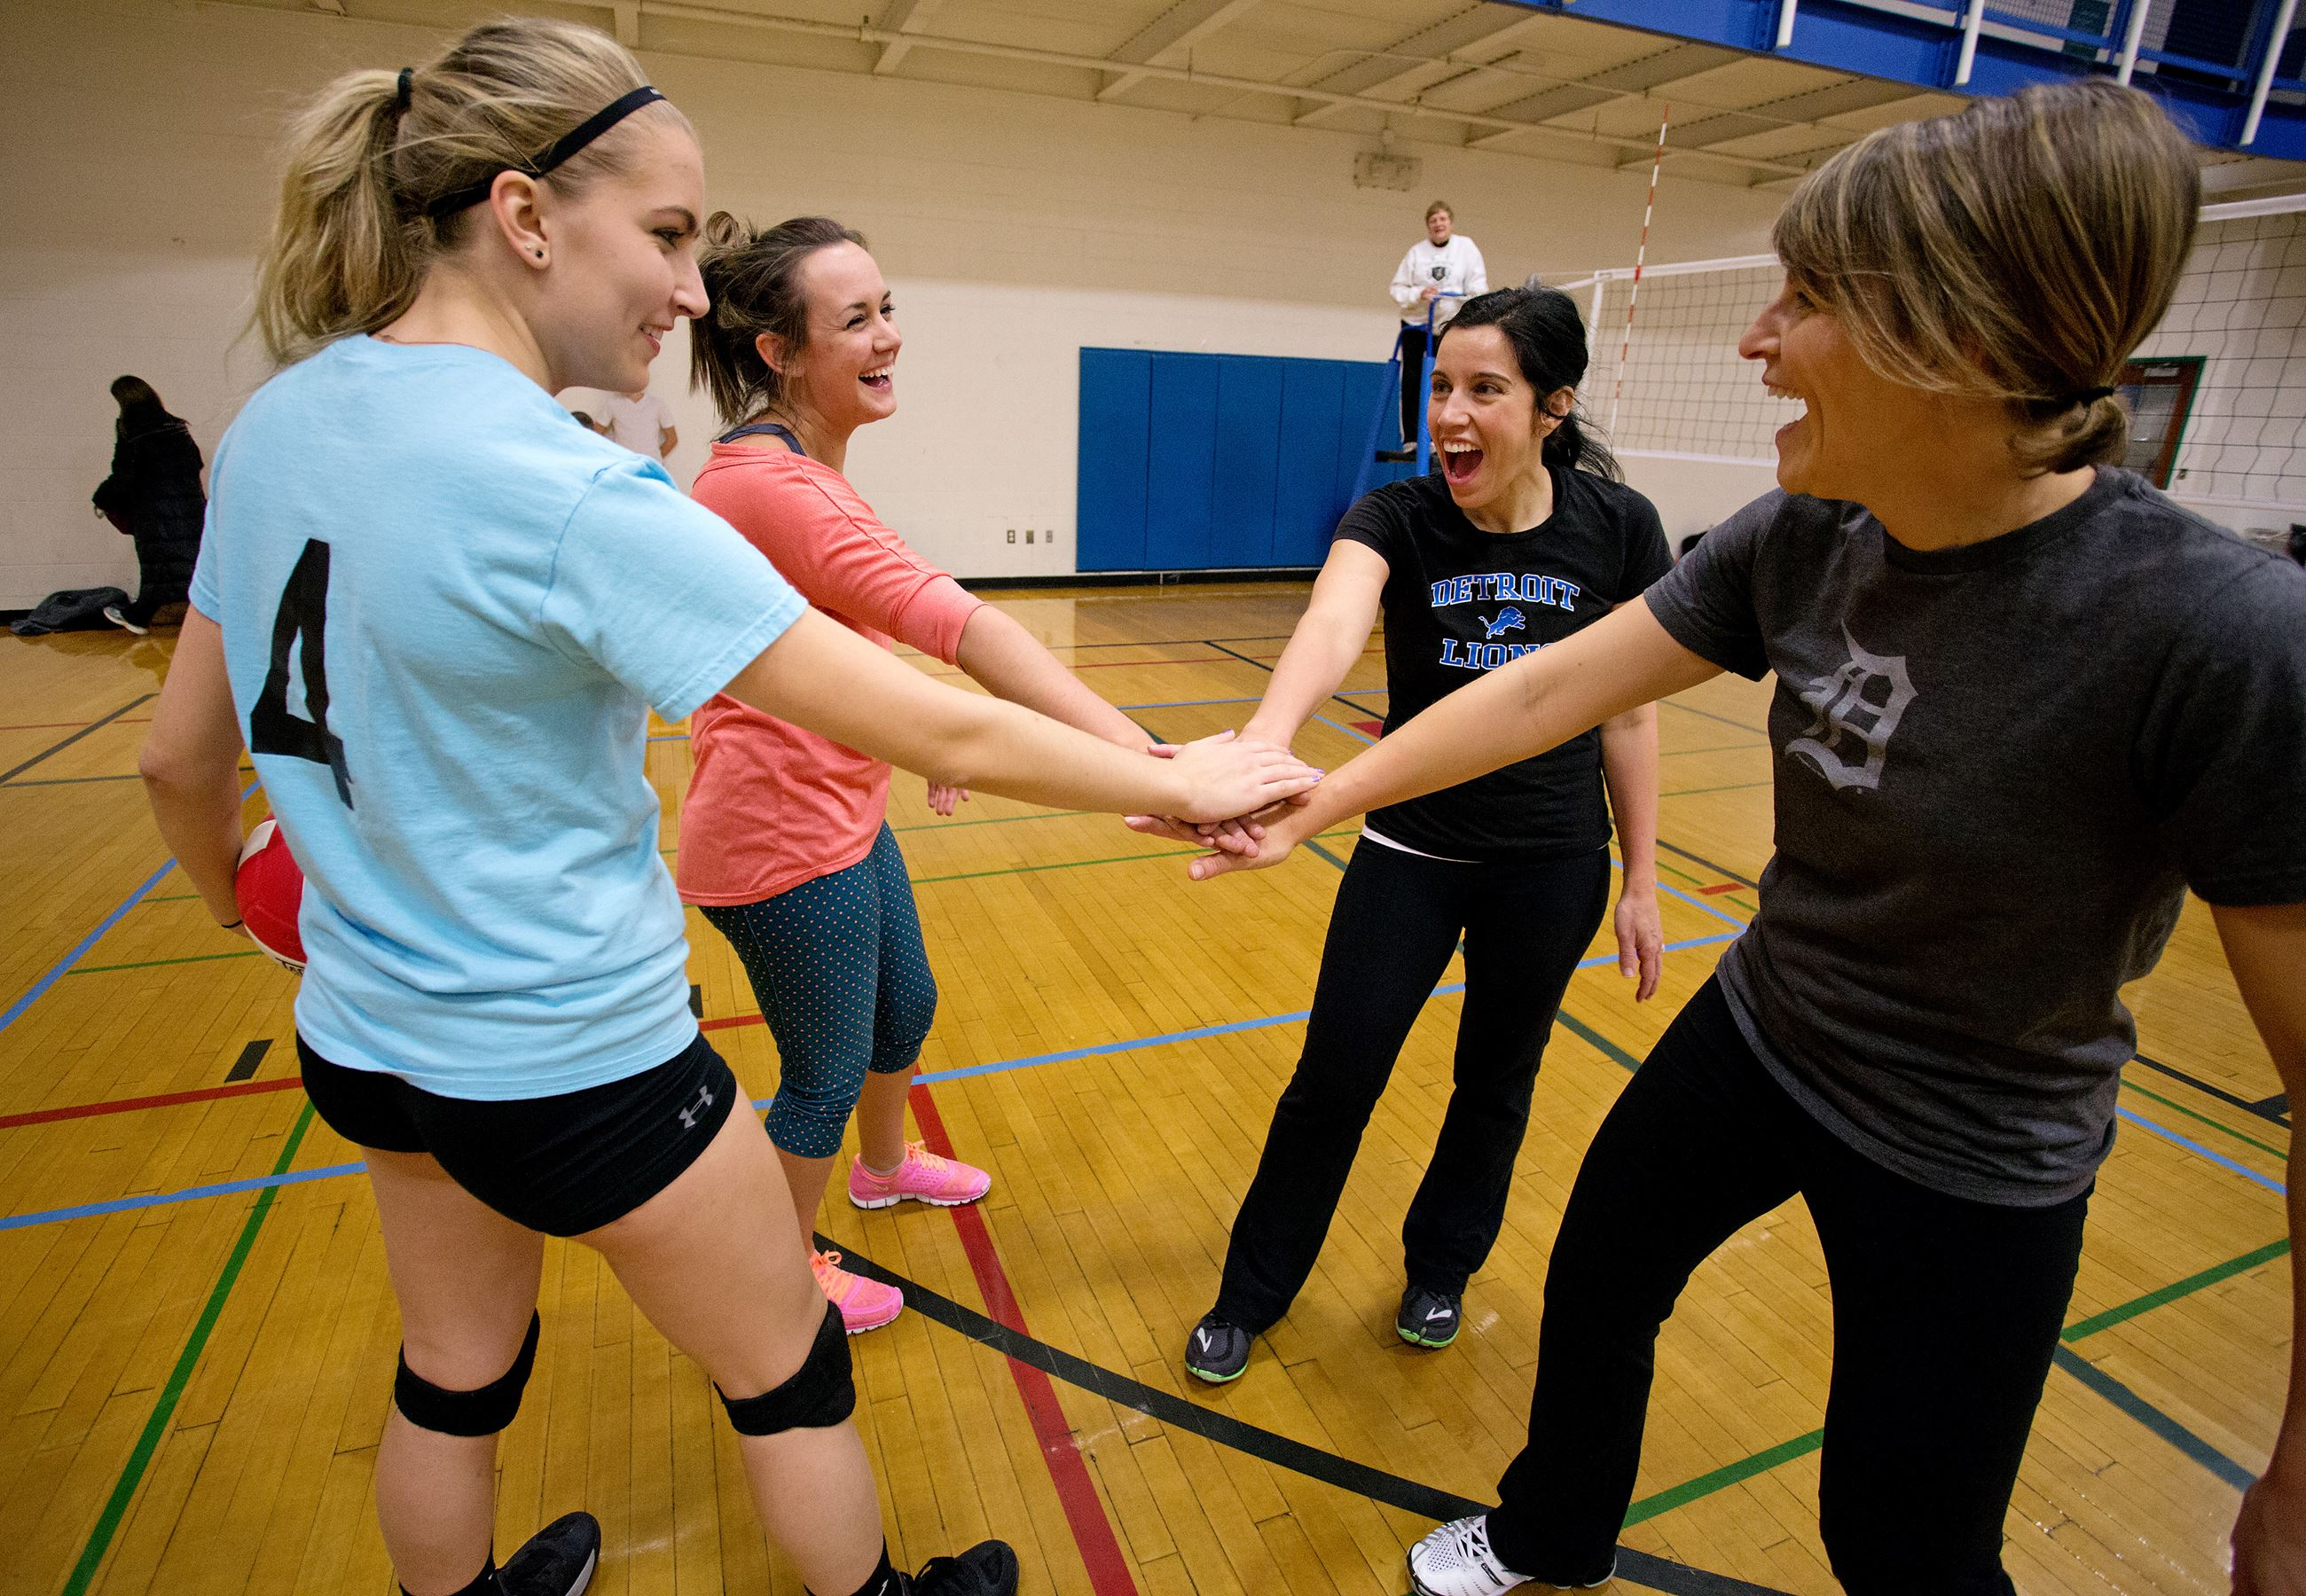 Volleyball | Canton Township, MI - Official Website